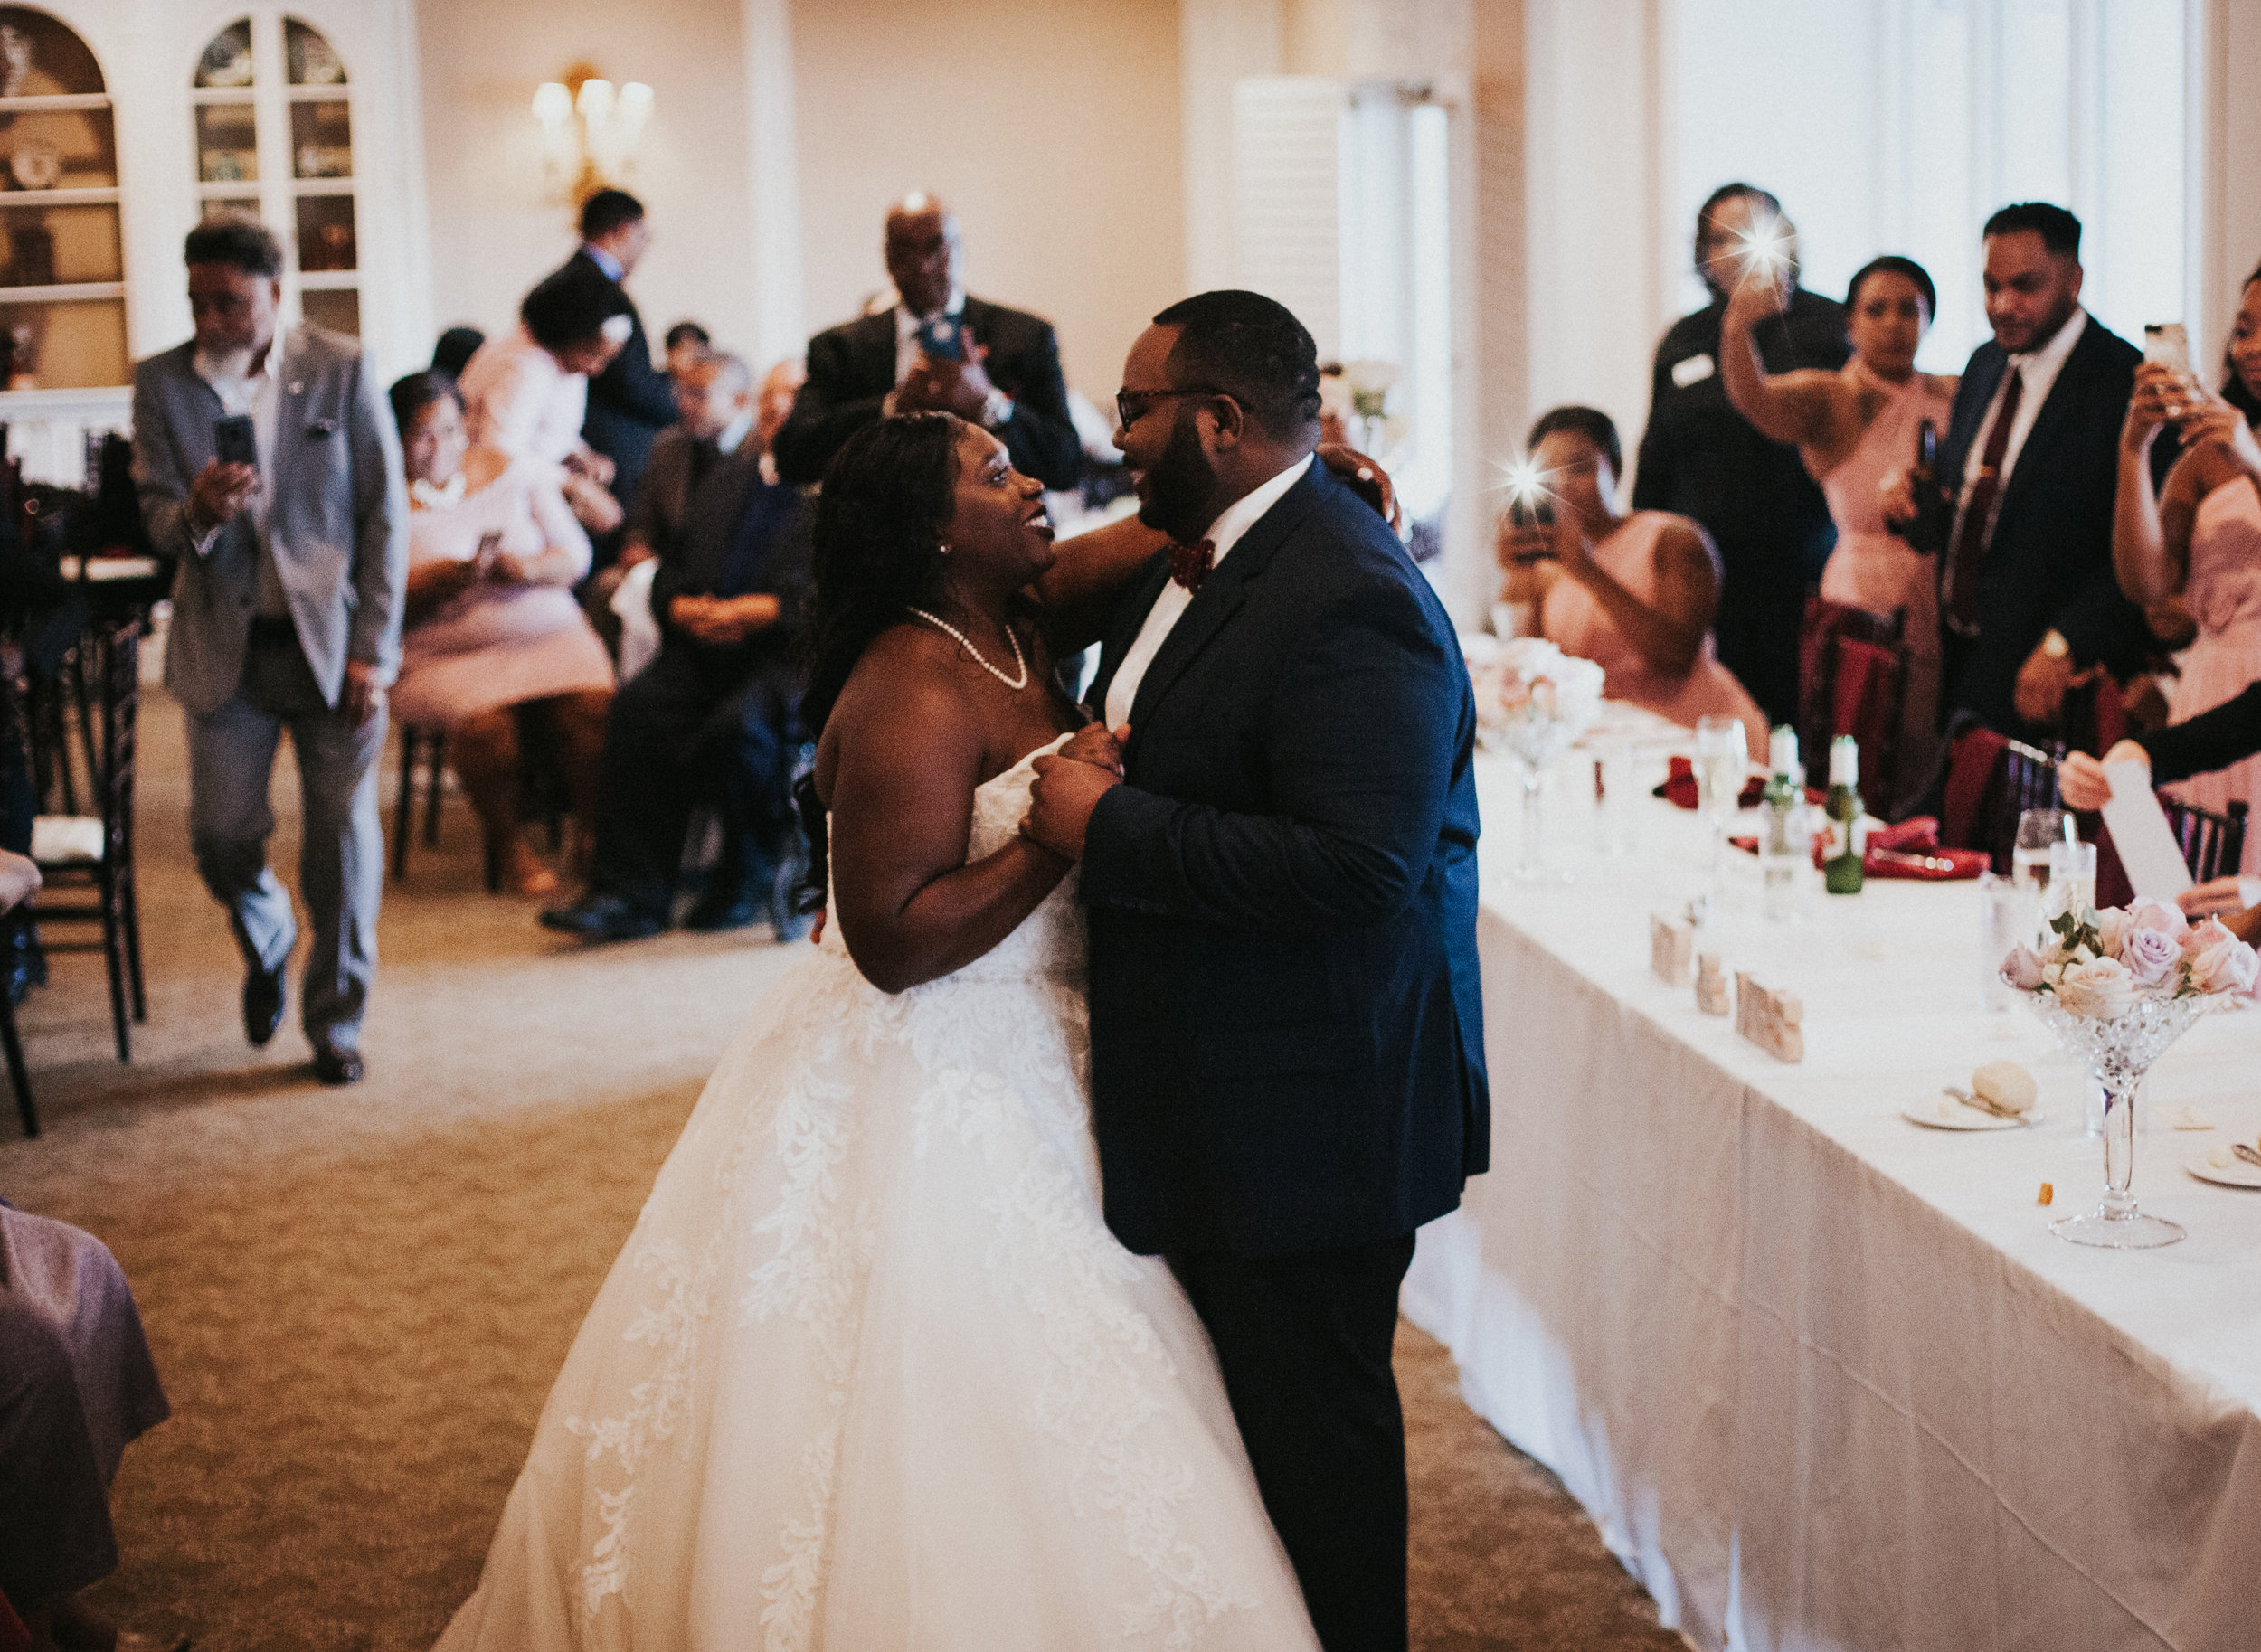 Hope Valley Country Club, Raleigh NC | Fall wedding | Wedding reception photos | First dance photos | Marina Rey Photography